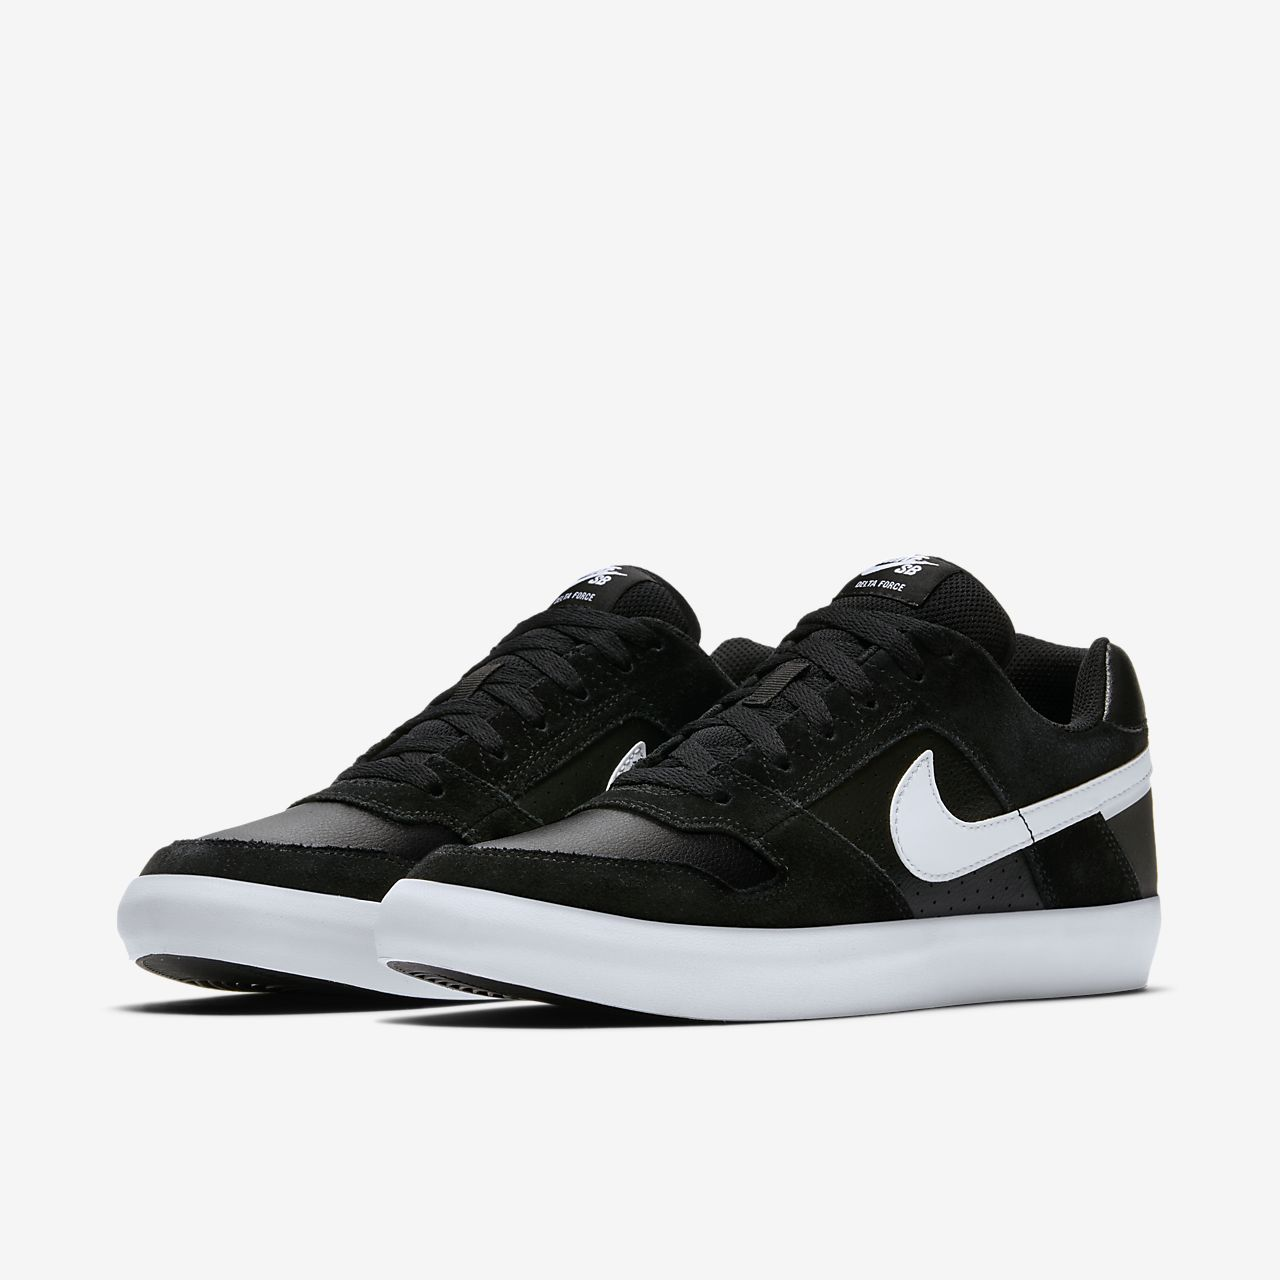 nike sb zoom delta force